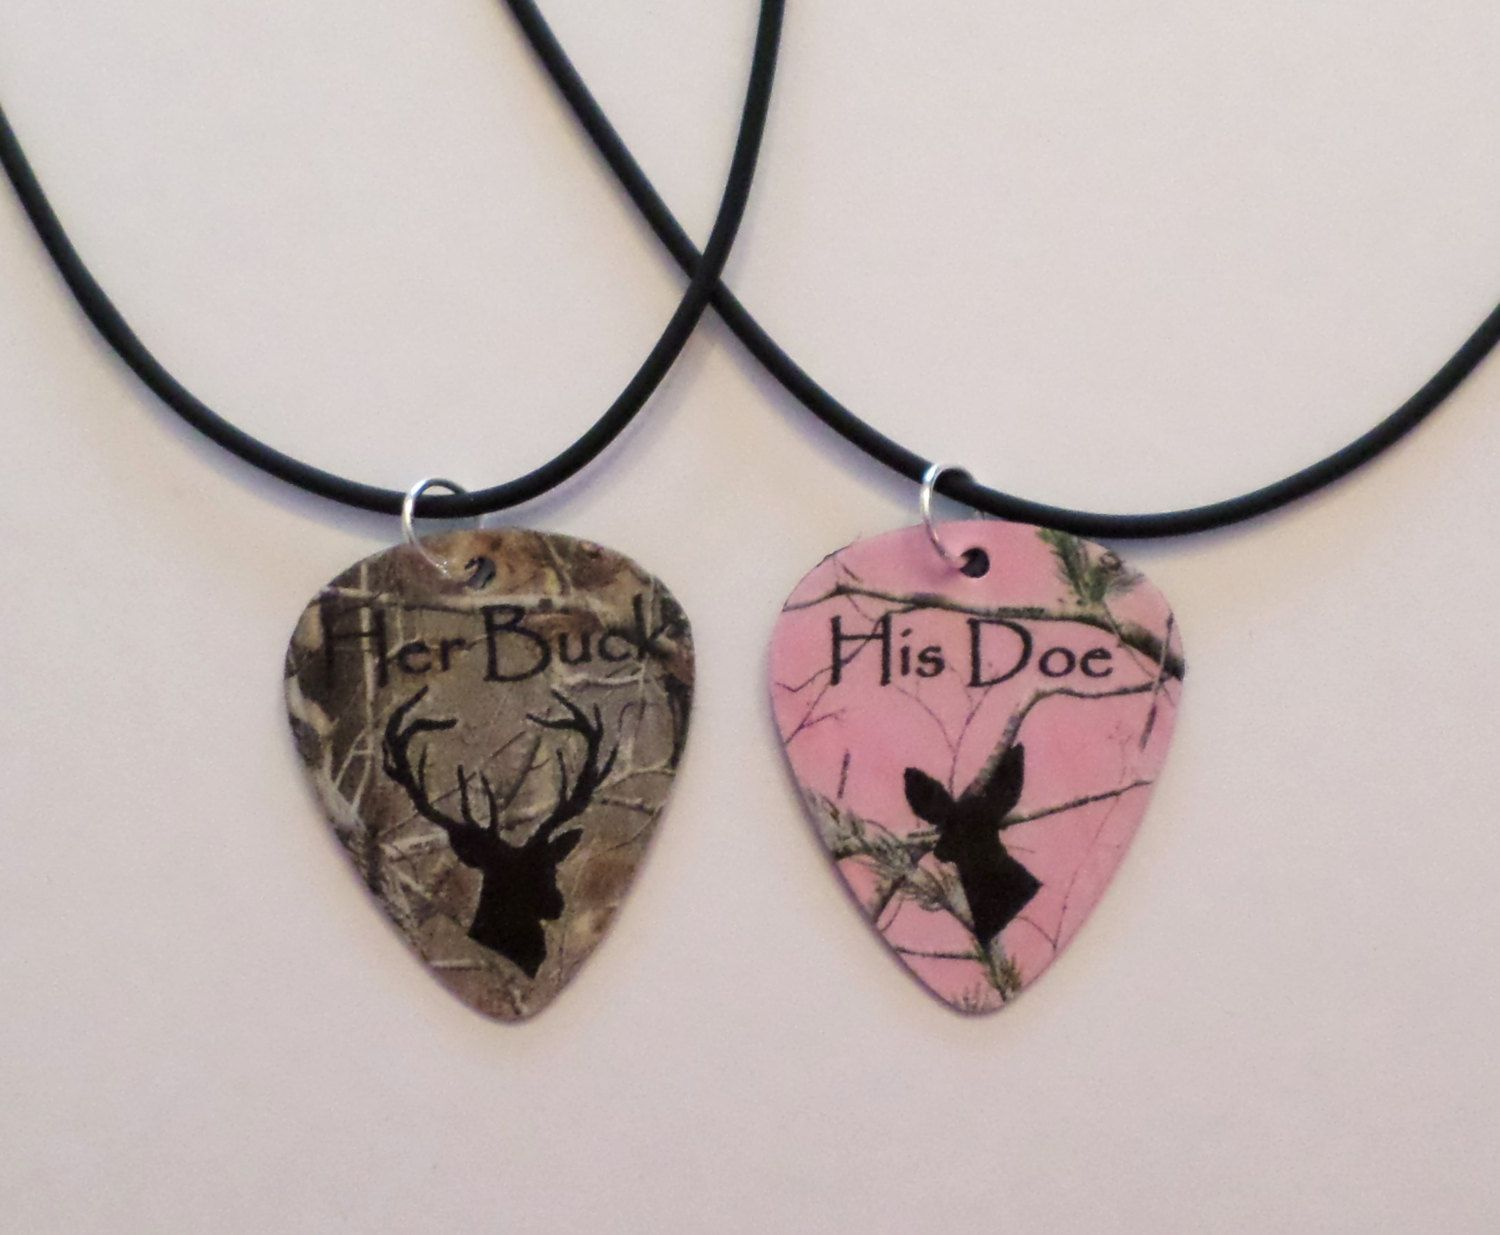 Her Buck His Doe necklaces Guitar pick matching for couples love ...